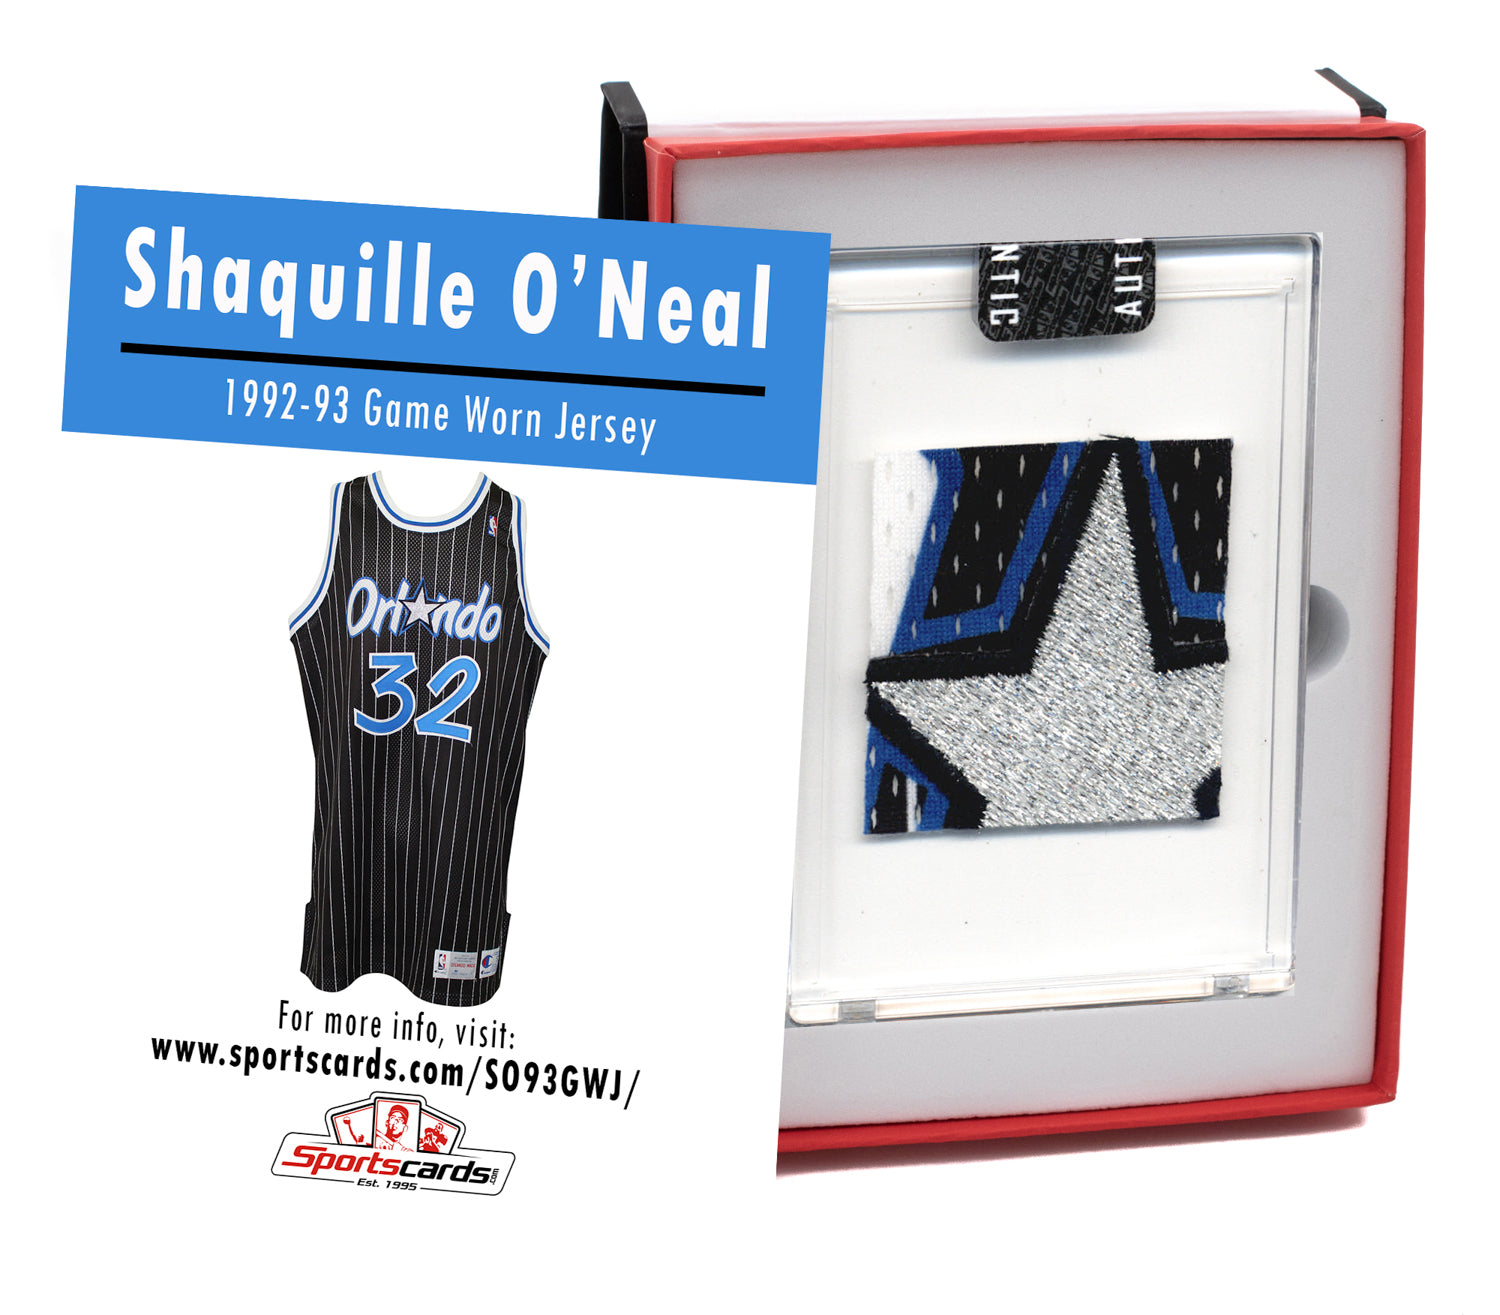 Shaquille O'Neal 1992-93 Rookie Year Game Worn Jersey Mystery Sealed Swatch Box